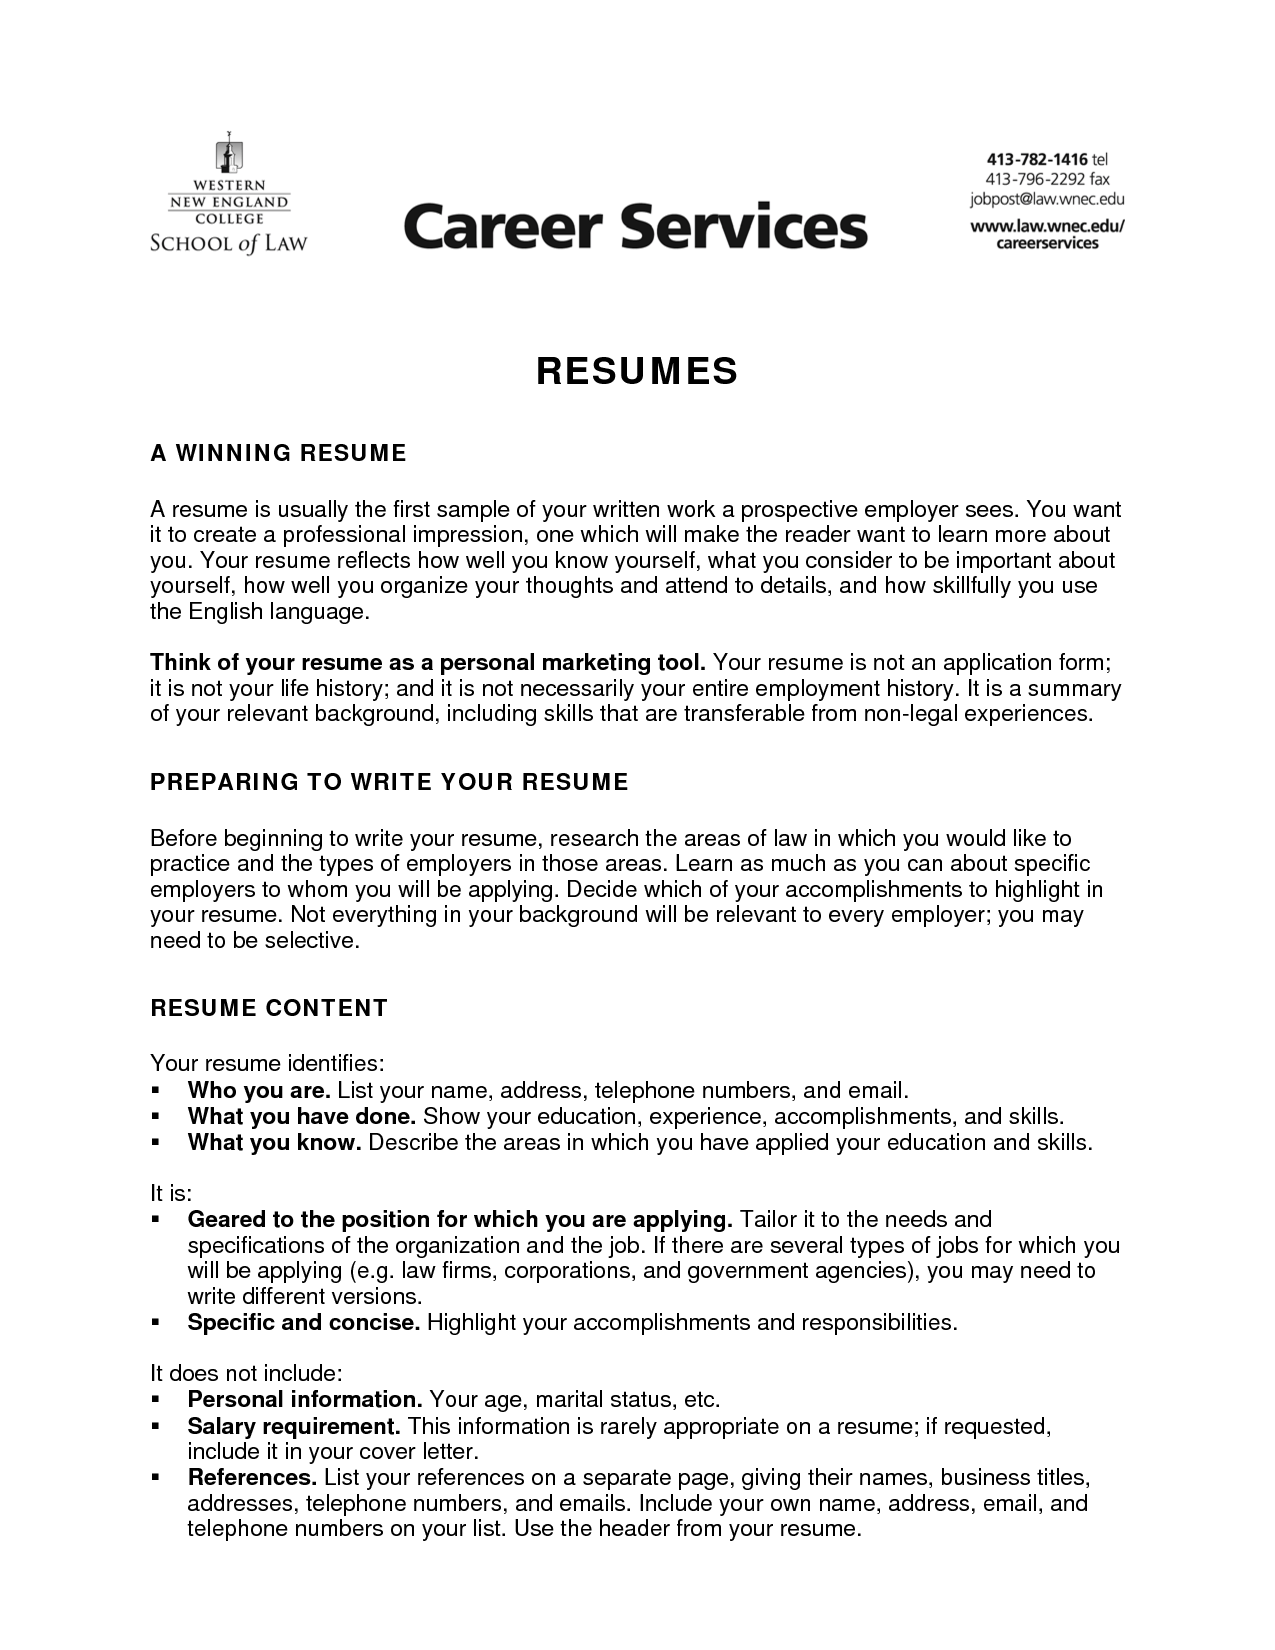 How To Introduce Yourself In Resume How To Introduce Yourself On Resume Quora